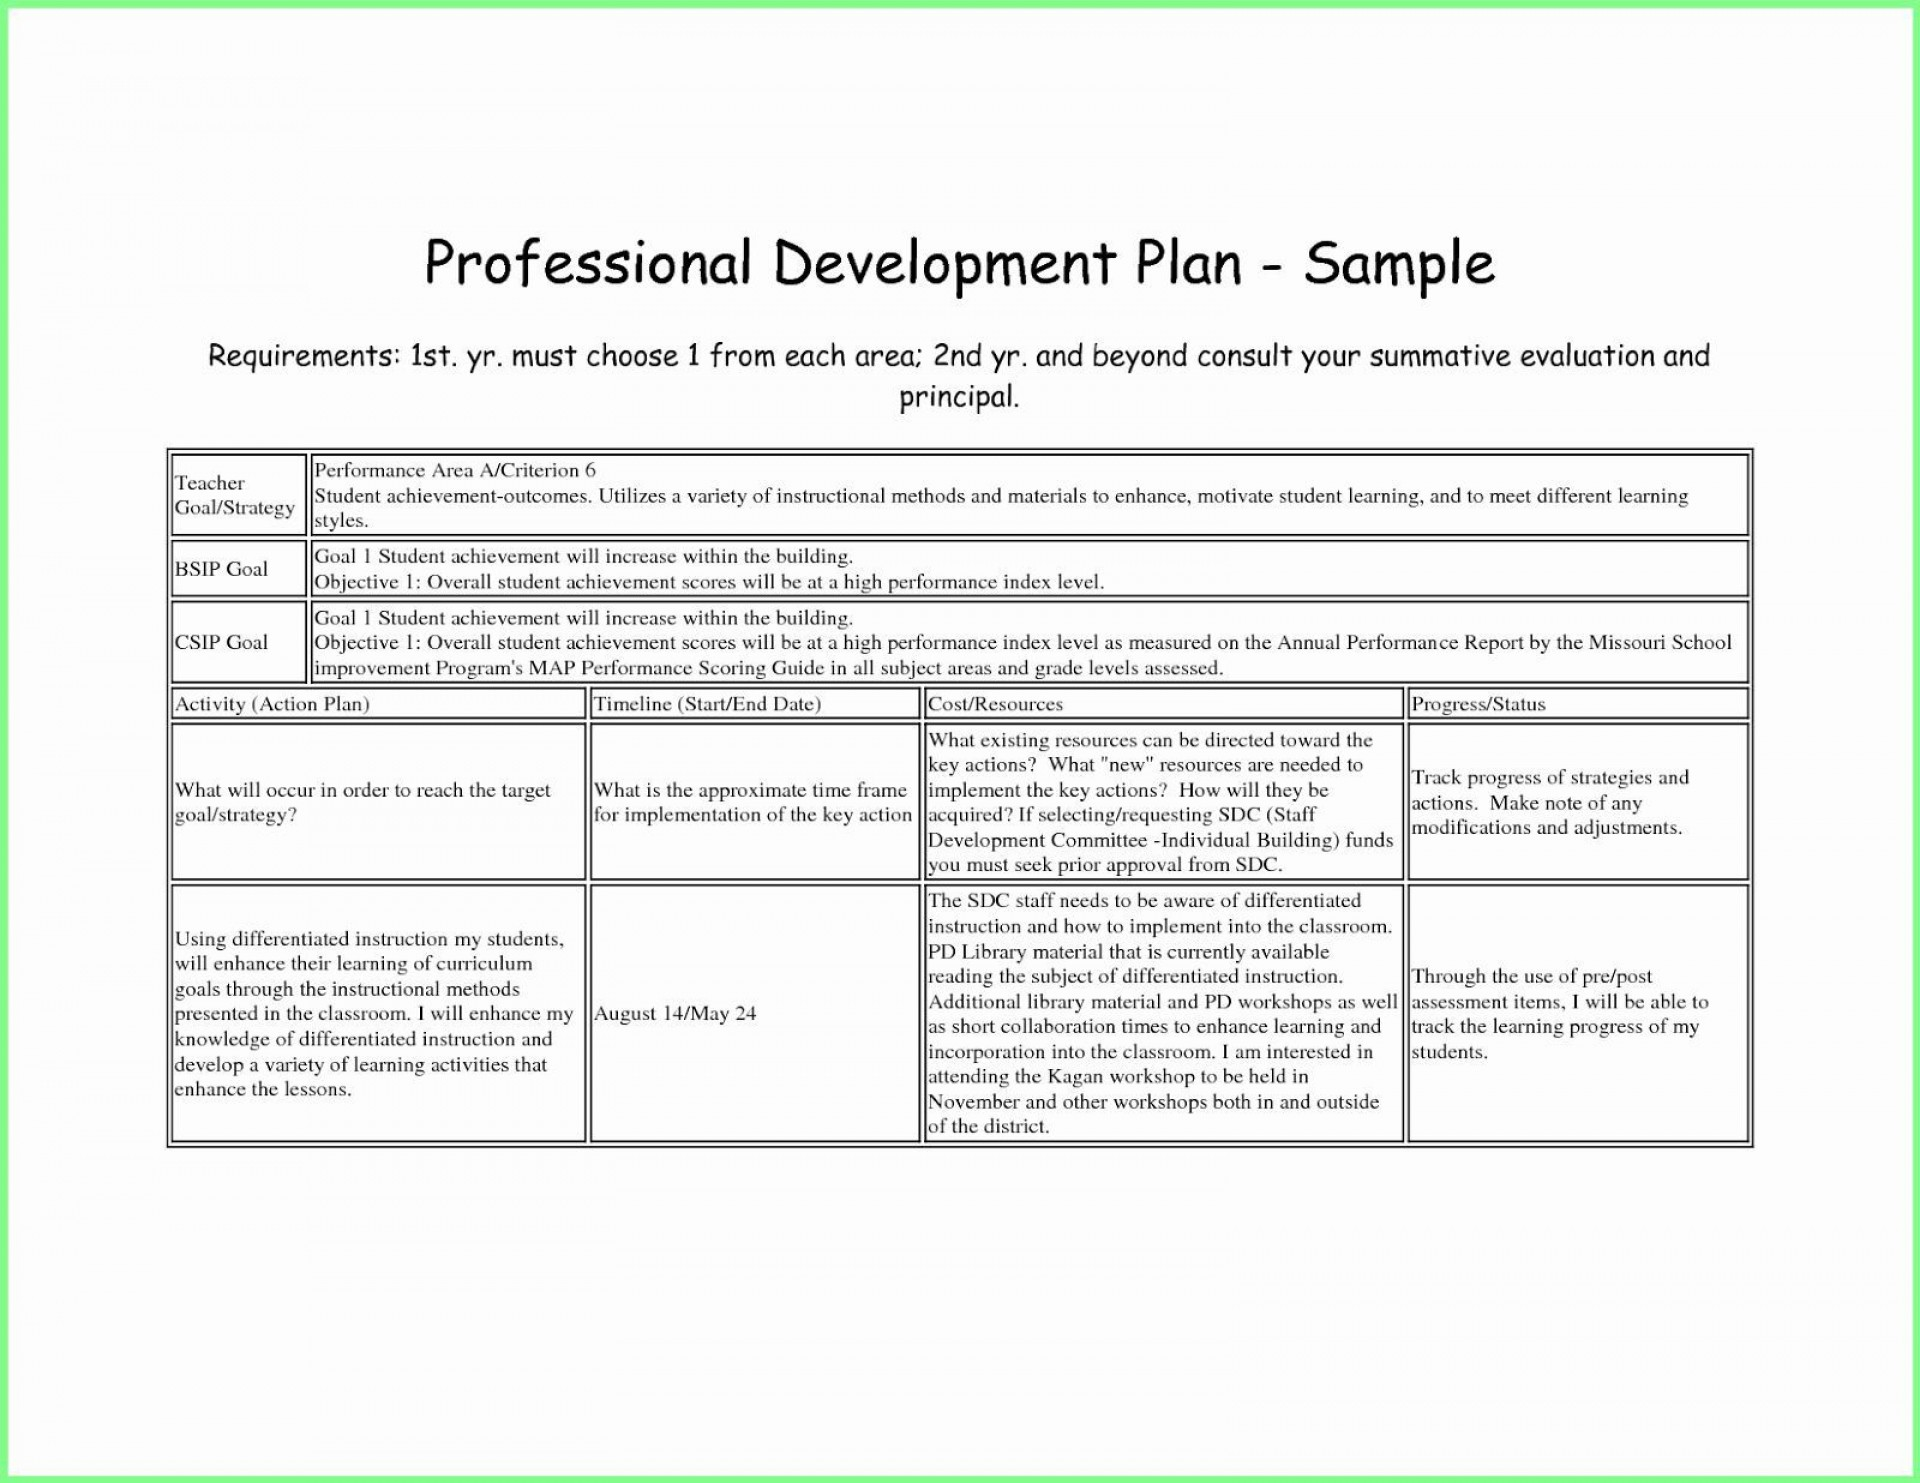 000 Fearsome Professional Development Plan Template For Doctor High Definition  Doctors Sample1920